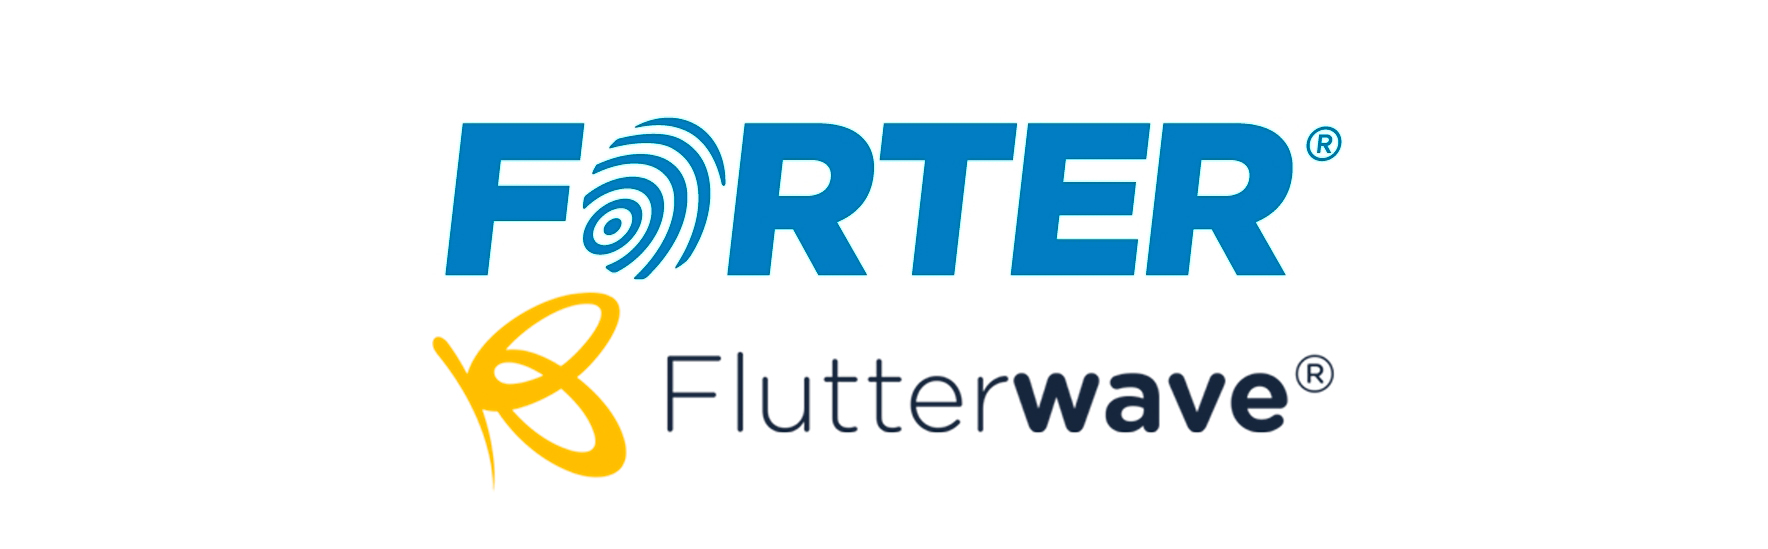 Forter Partners with Flutterwave to Drive eCommerce Growth Across Africa and Beyond